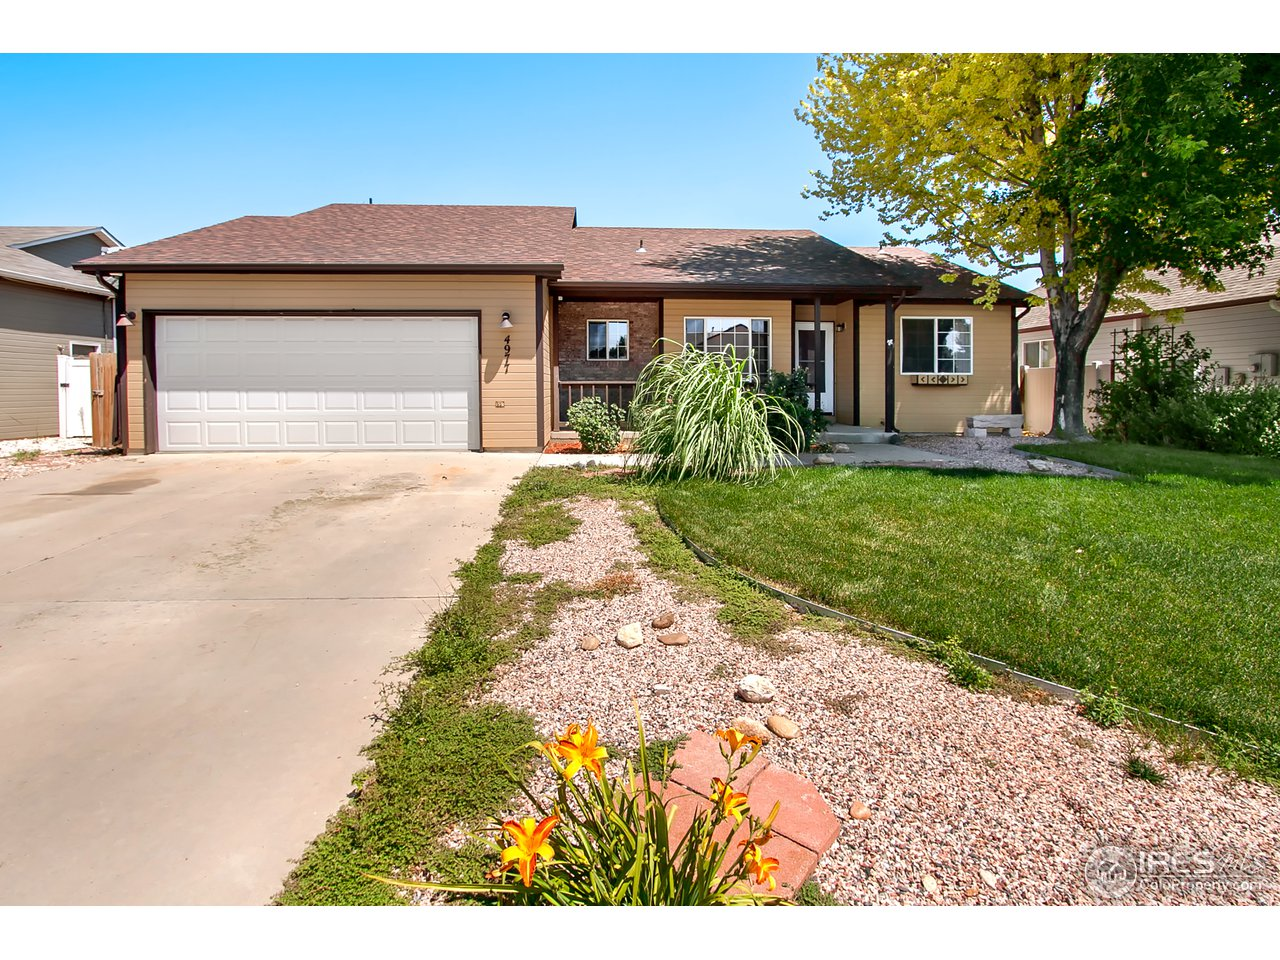 4977 W 3rd St Rd, Greeley CO 80634